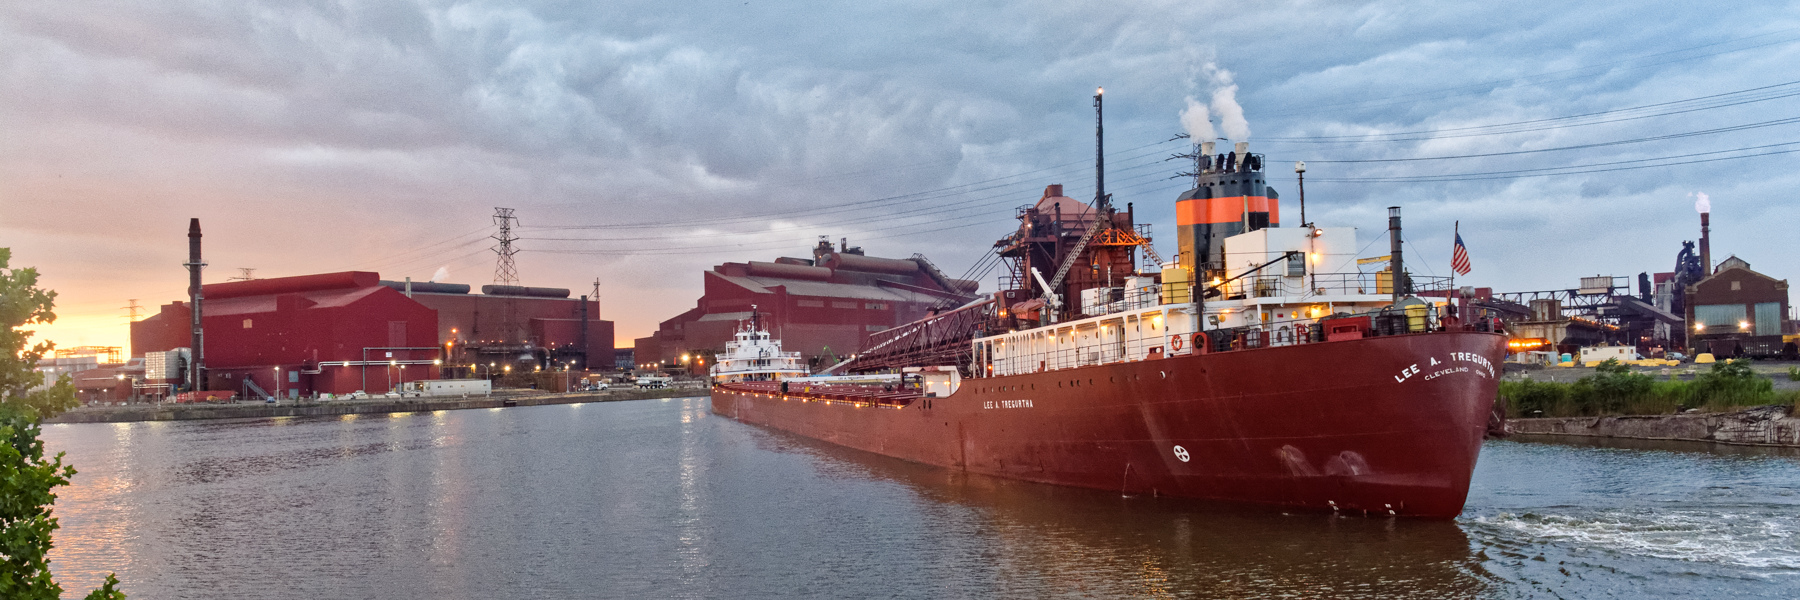 Industrial Evening Arrival - Lee A. Tregurtha in Rouge Turning Basin with a load for AK Steel.